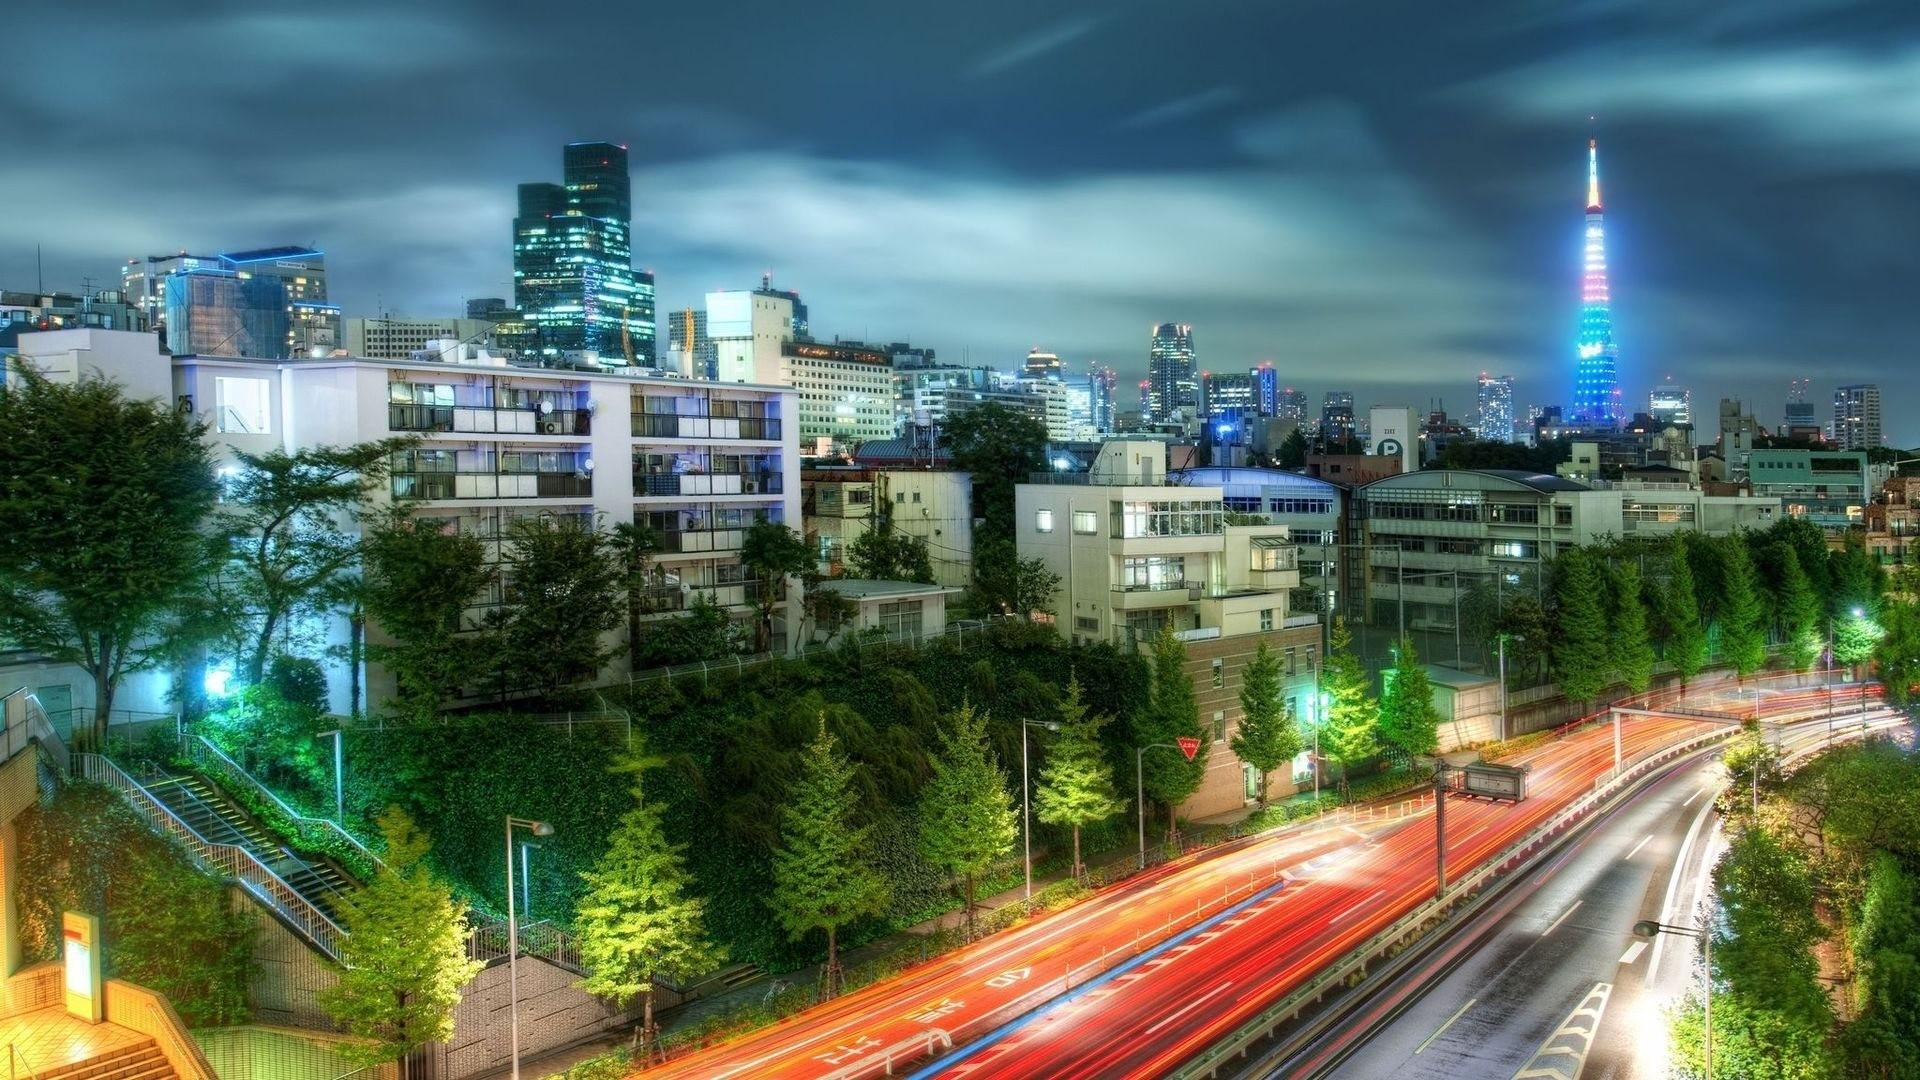 Japan tokyo cityscapes night wallpaper 4948 PC 1920x1080